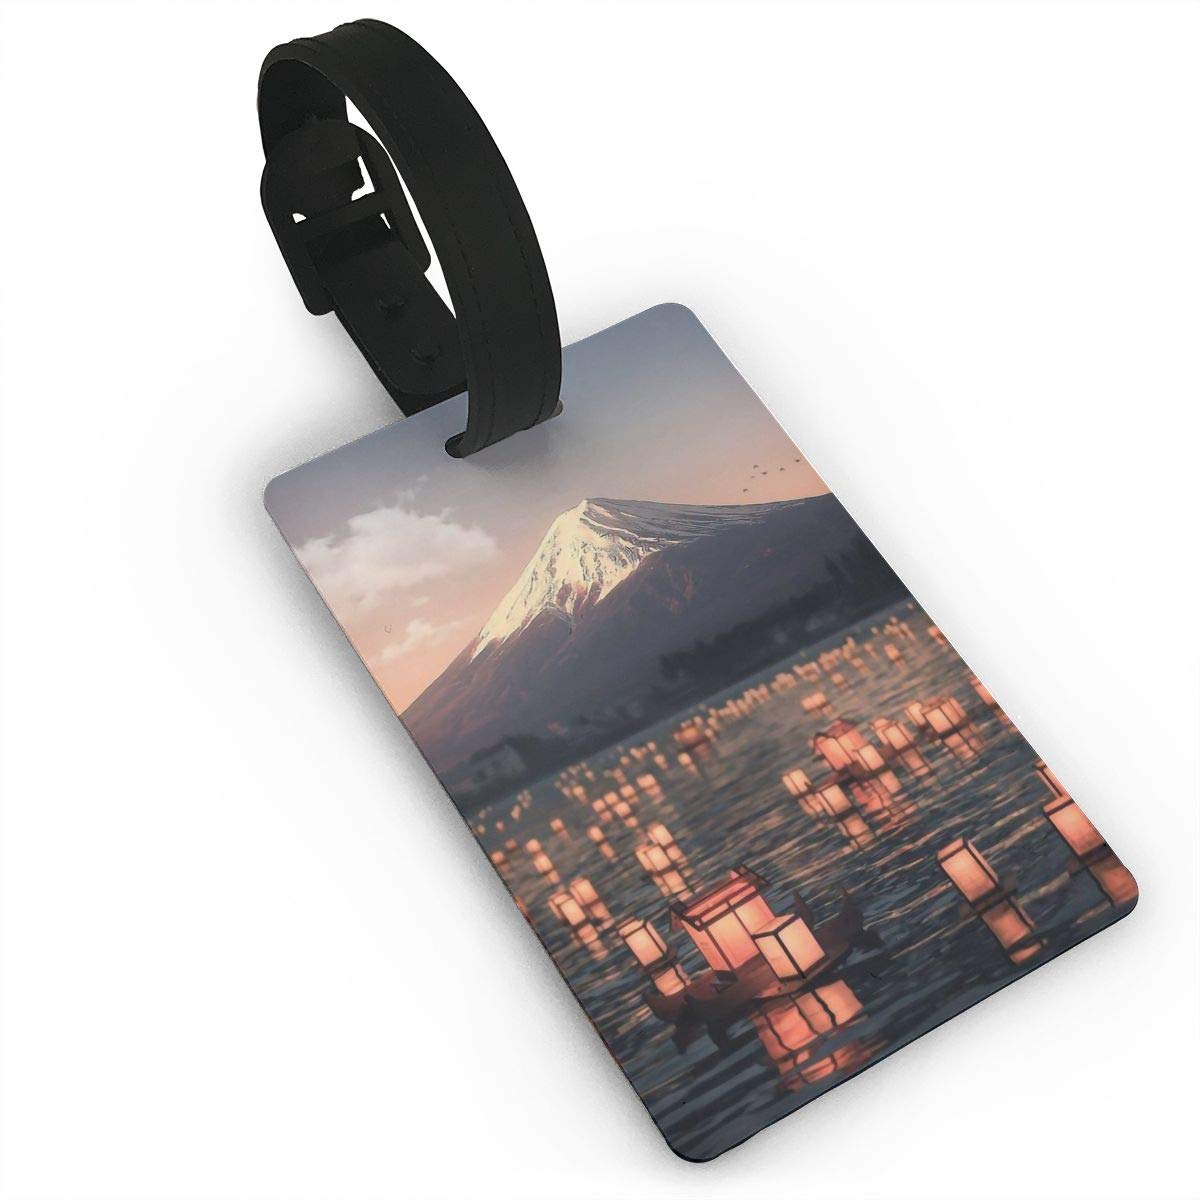 Mount Fuji Cruise Luggage Tag For Travel Tags Accessories 2 Pack Luggage Tags